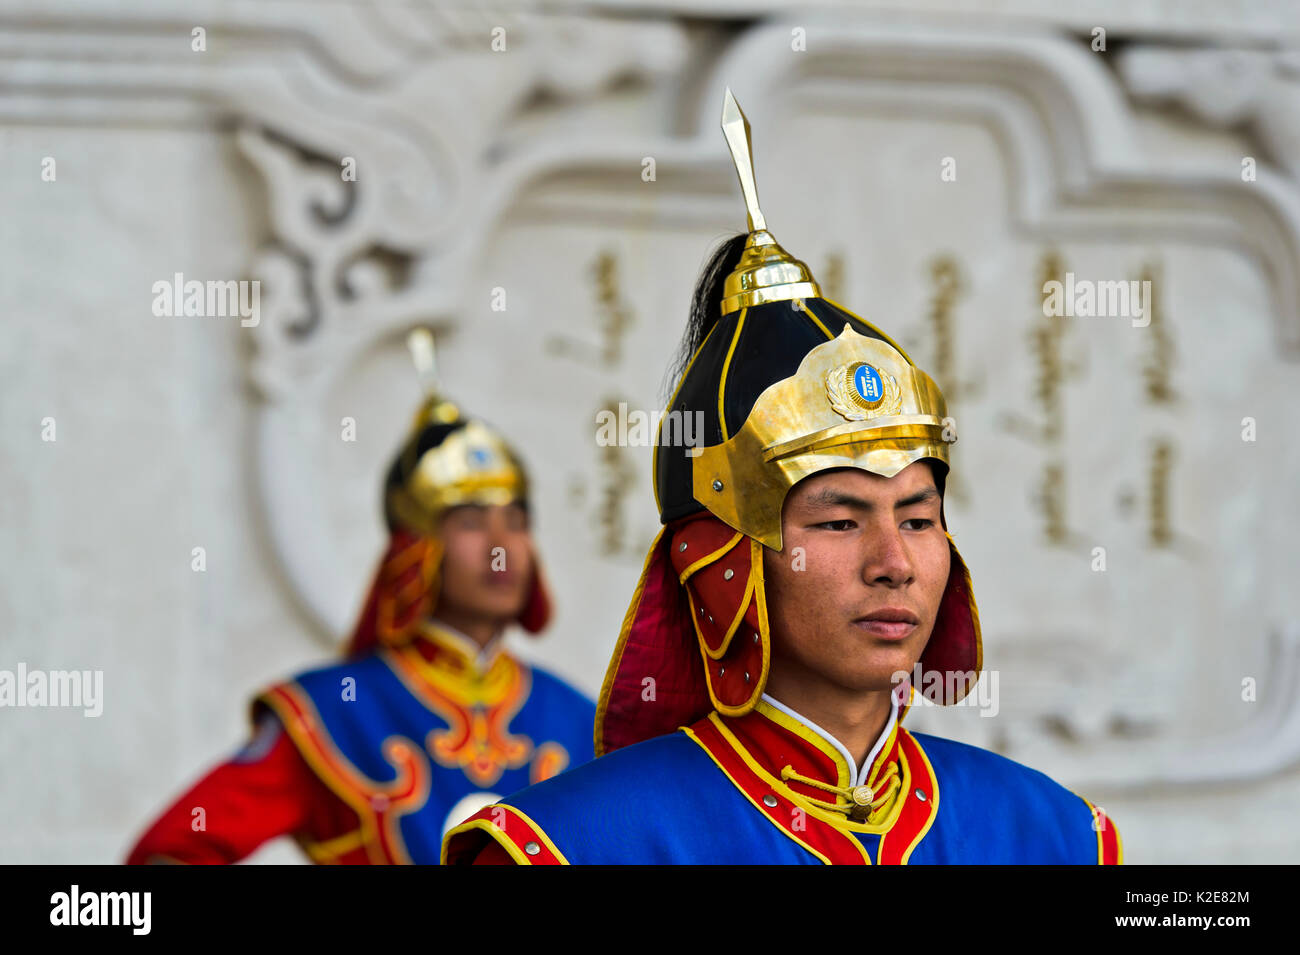 Guardian of the Mongolian armed forces in traditional uniforms in front of the Dschingis-Khan monument at the parliament - Stock Image